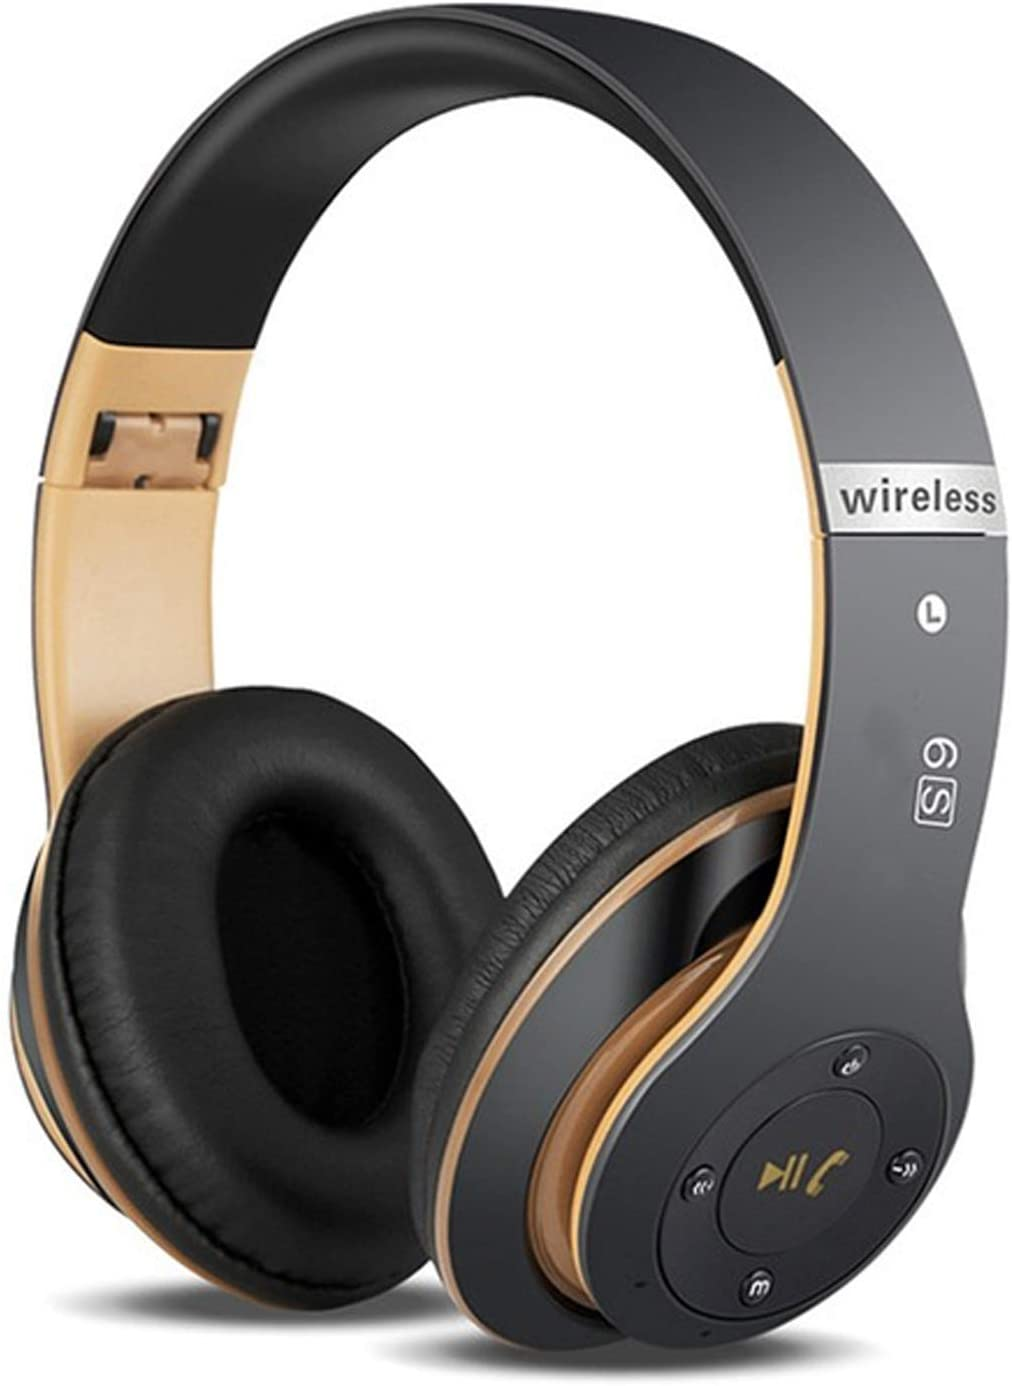 Wireless Over Ear Headphones - smrt-life.com